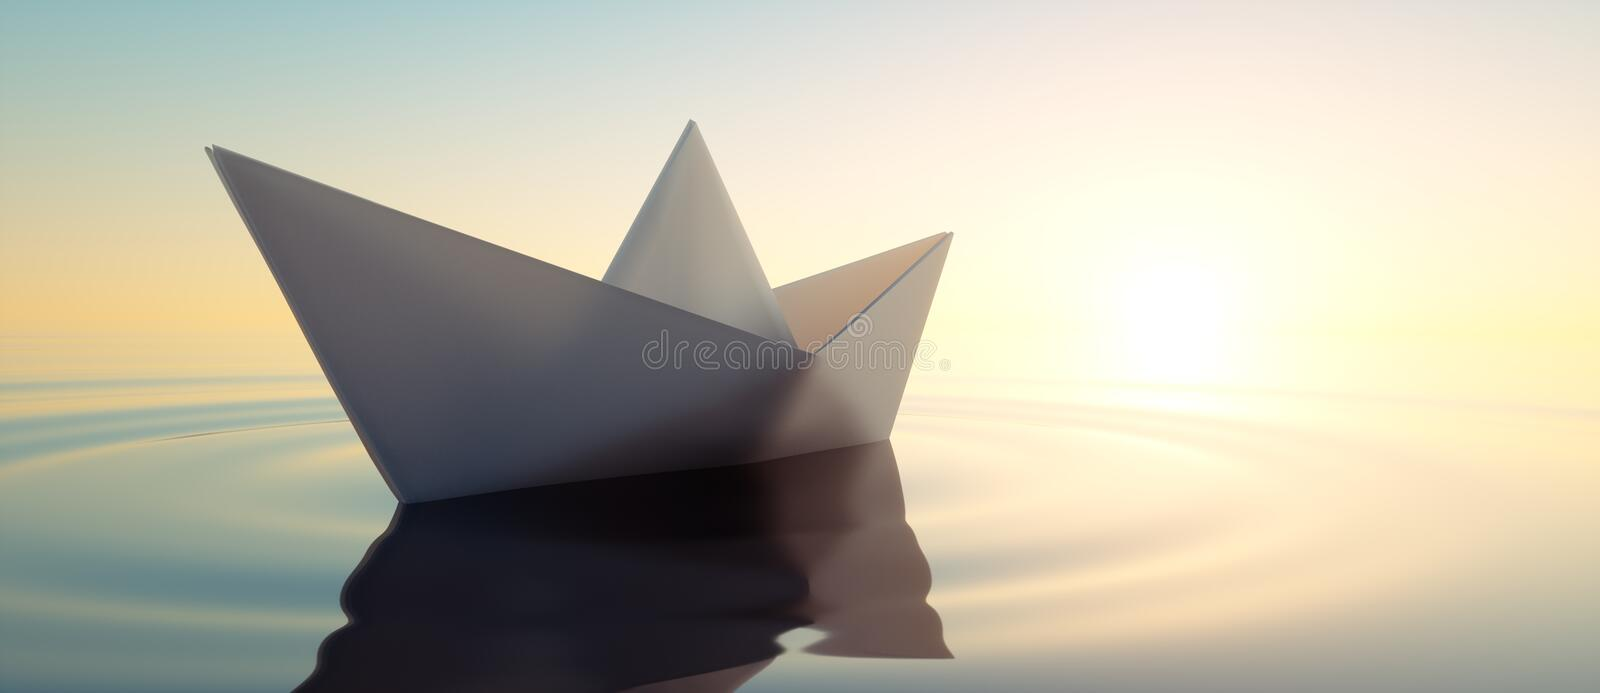 Closeup of a paperboat in a calm sea. Single white paperboat in calm water in the wide ocean  at sunset - concept of meditation - 3D illustration royalty free illustration